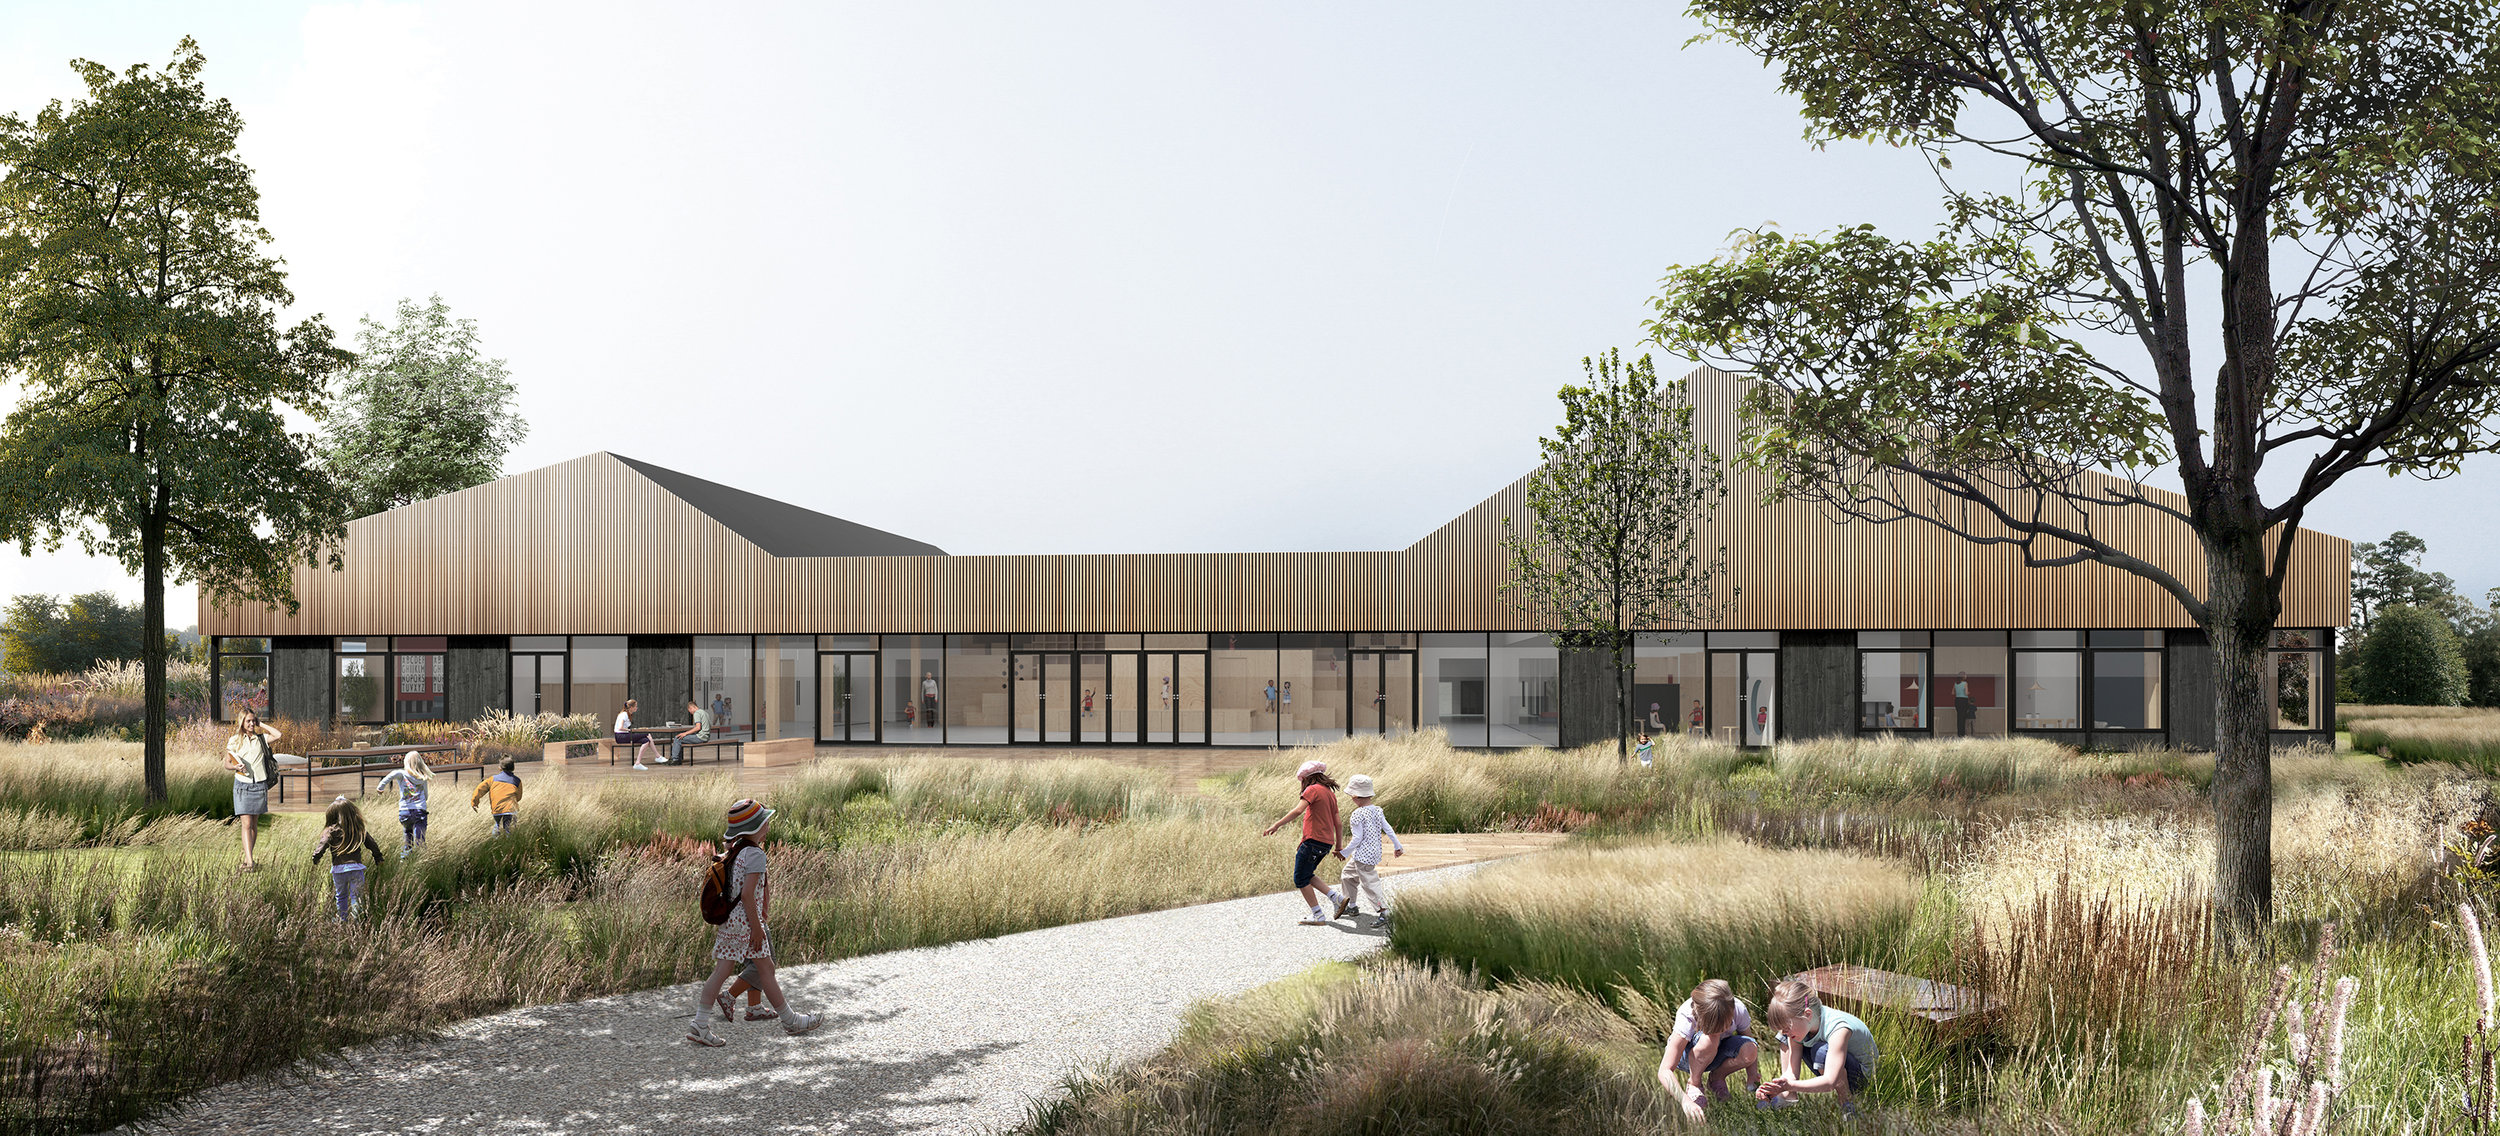 - Life and Learning Center Hashøj breaks down the division between the learning environment and the recreational lifeRead more here